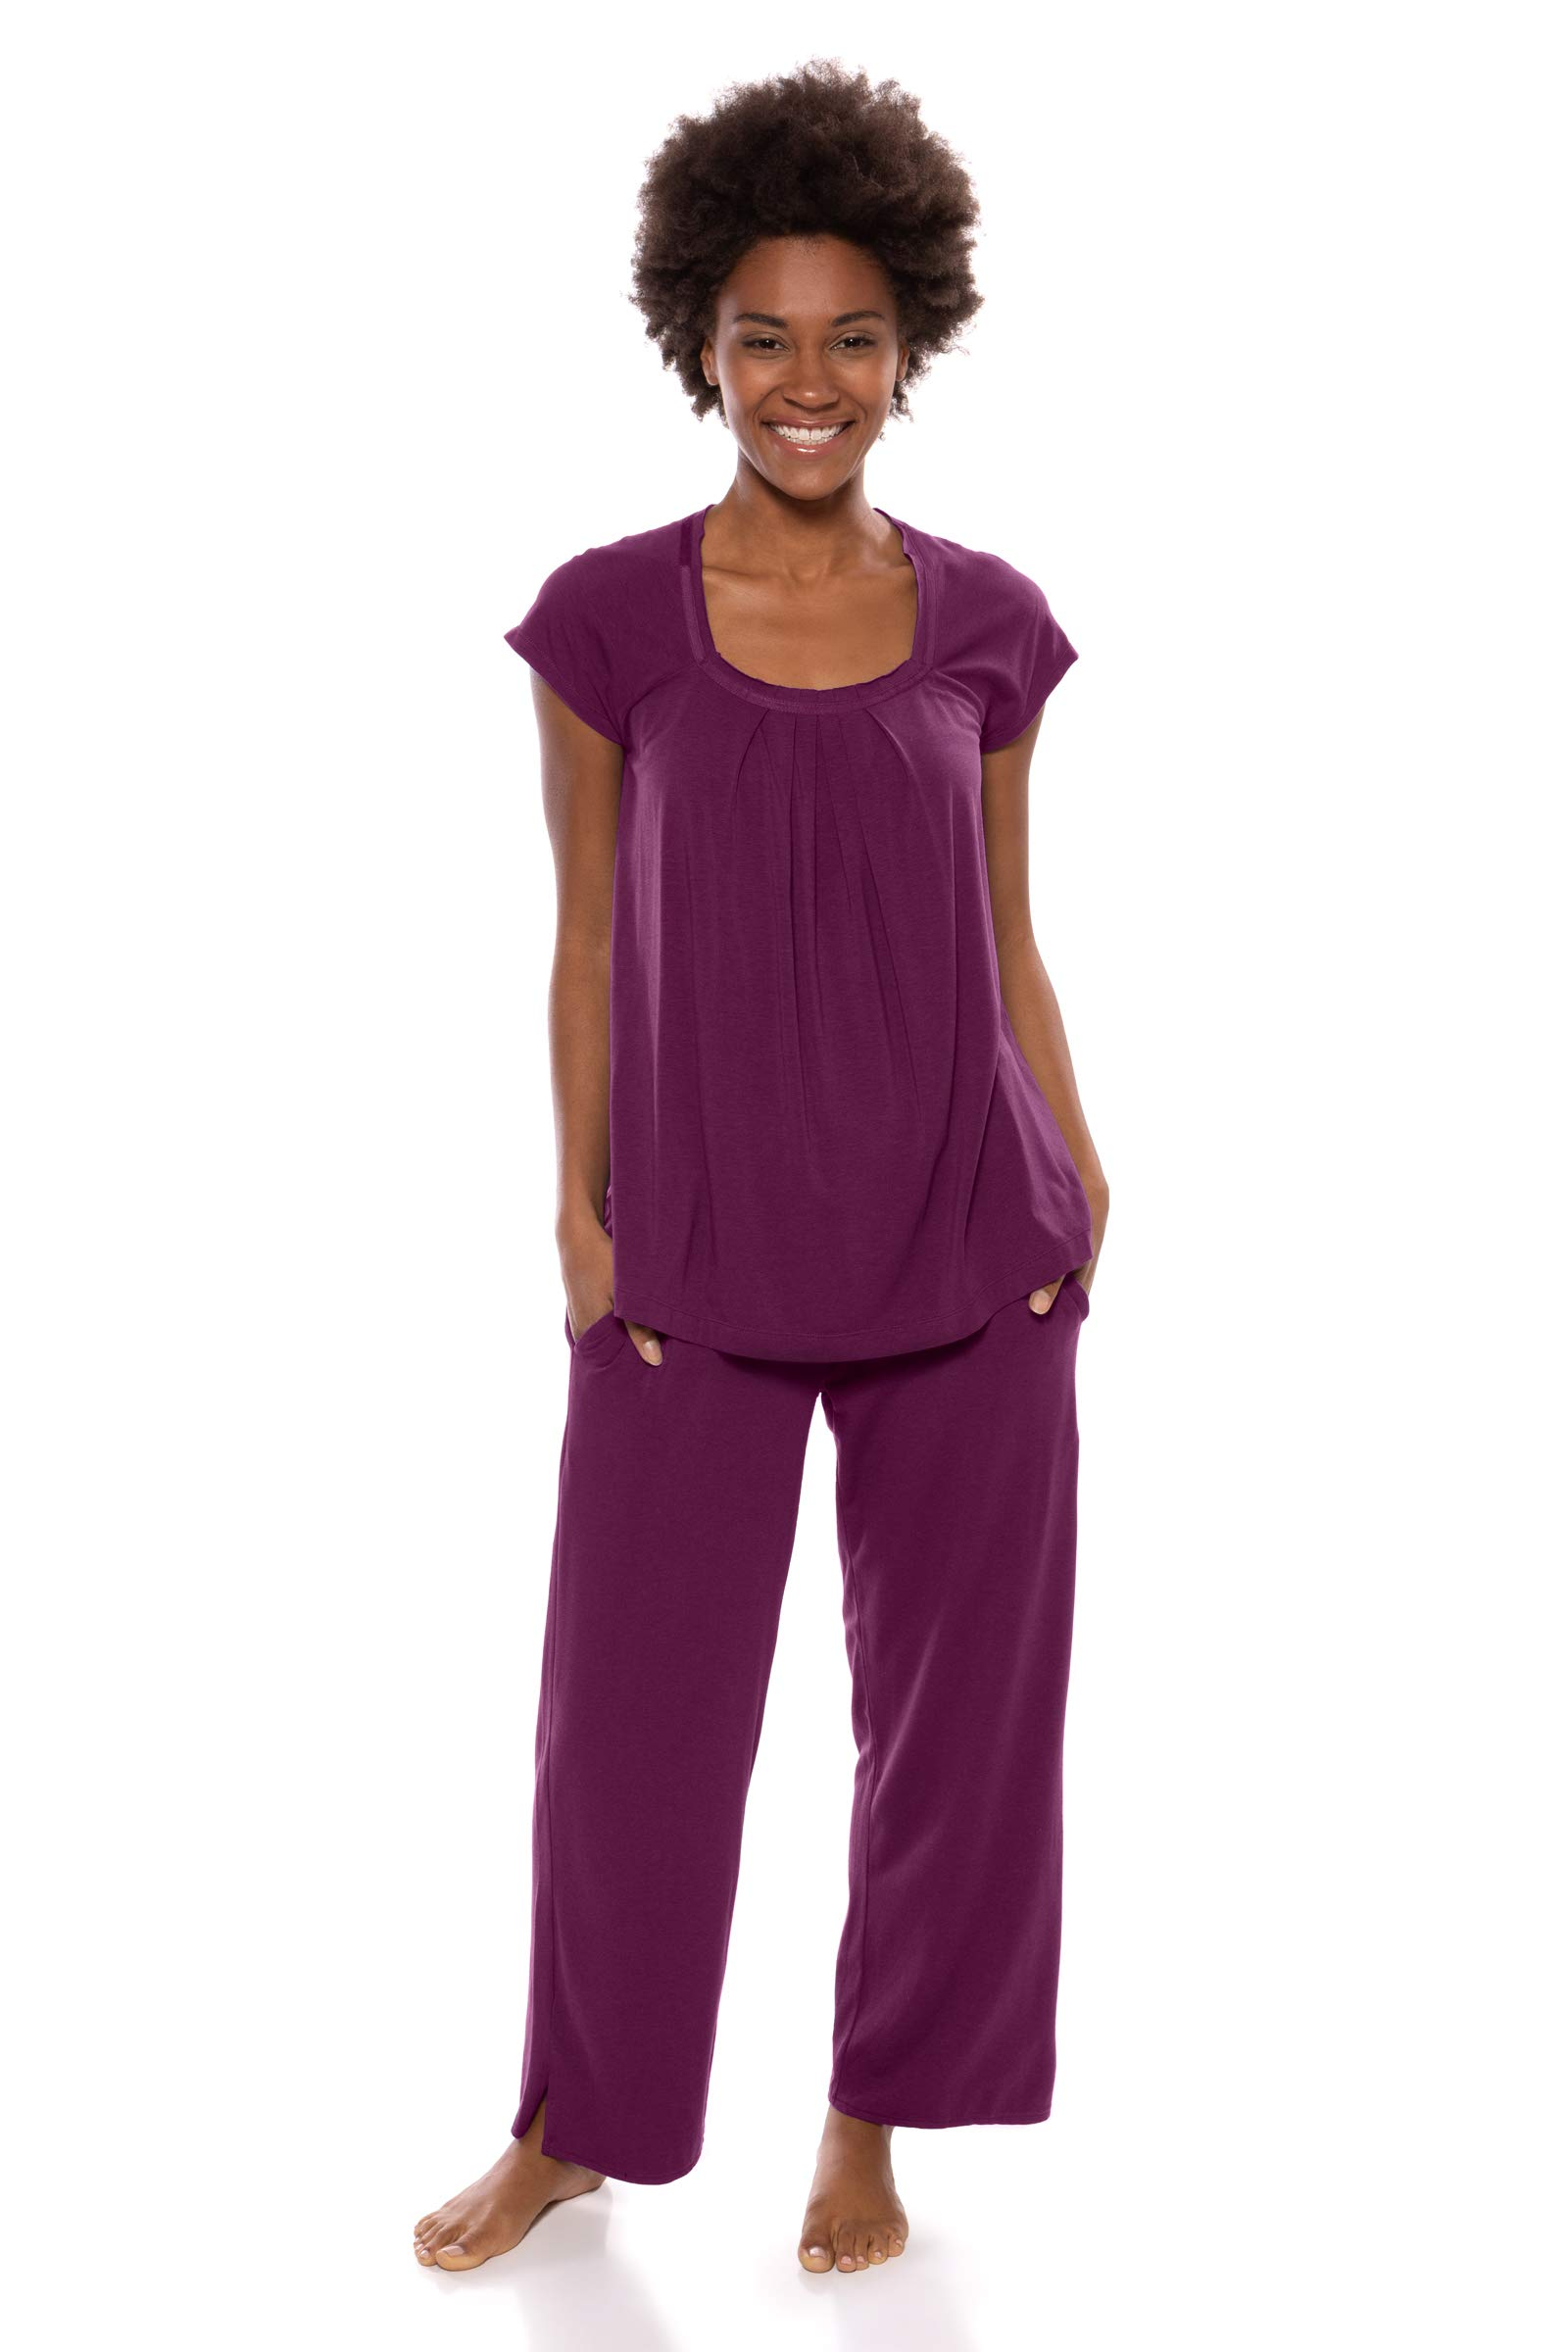 76d2a13cb80c Women s Pajamas in Bamboo Viscose (Bamboo Bliss) Cozy Sleepwear Set by  Texere